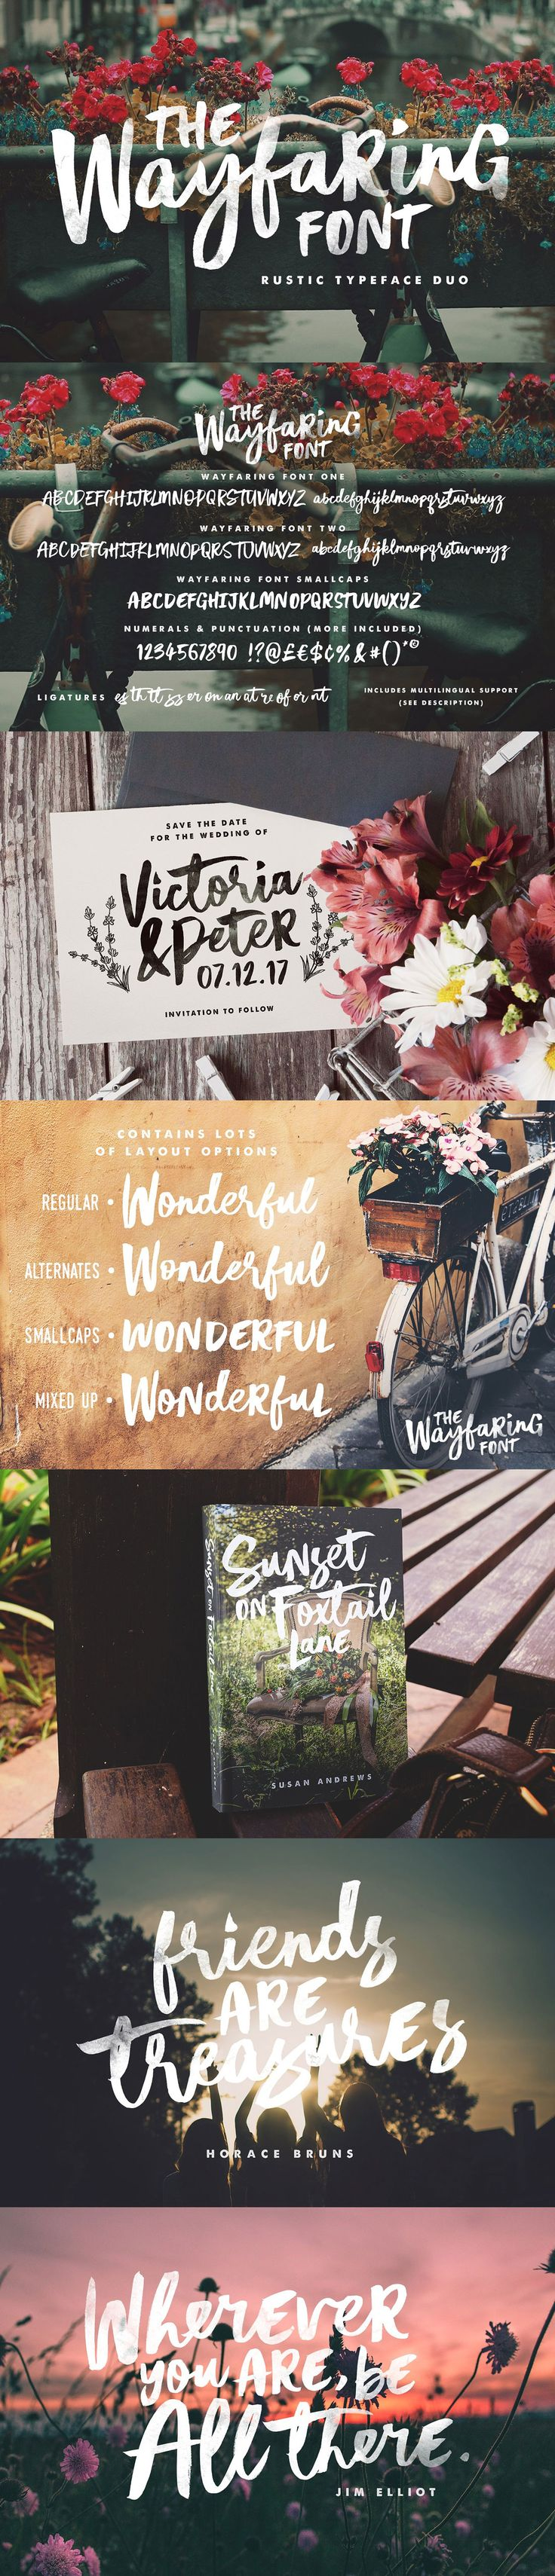 The Wayfaring #Font Duo! A hand-painted set of fonts designed to add a rustic and whimsical charm to your #design projects. It's rough around the edges and not without imperfections - but aren't we all? With distinctive bold & playful brush strokes, The Wayfaring Font Duo is ideal for your #logo designs, product #packaging, #wedding designs, book covers, social media posts, #merchandise & more. ( #calligraphy #typography #lettering #quotes #branding #handwriting #watercolor #typeface…